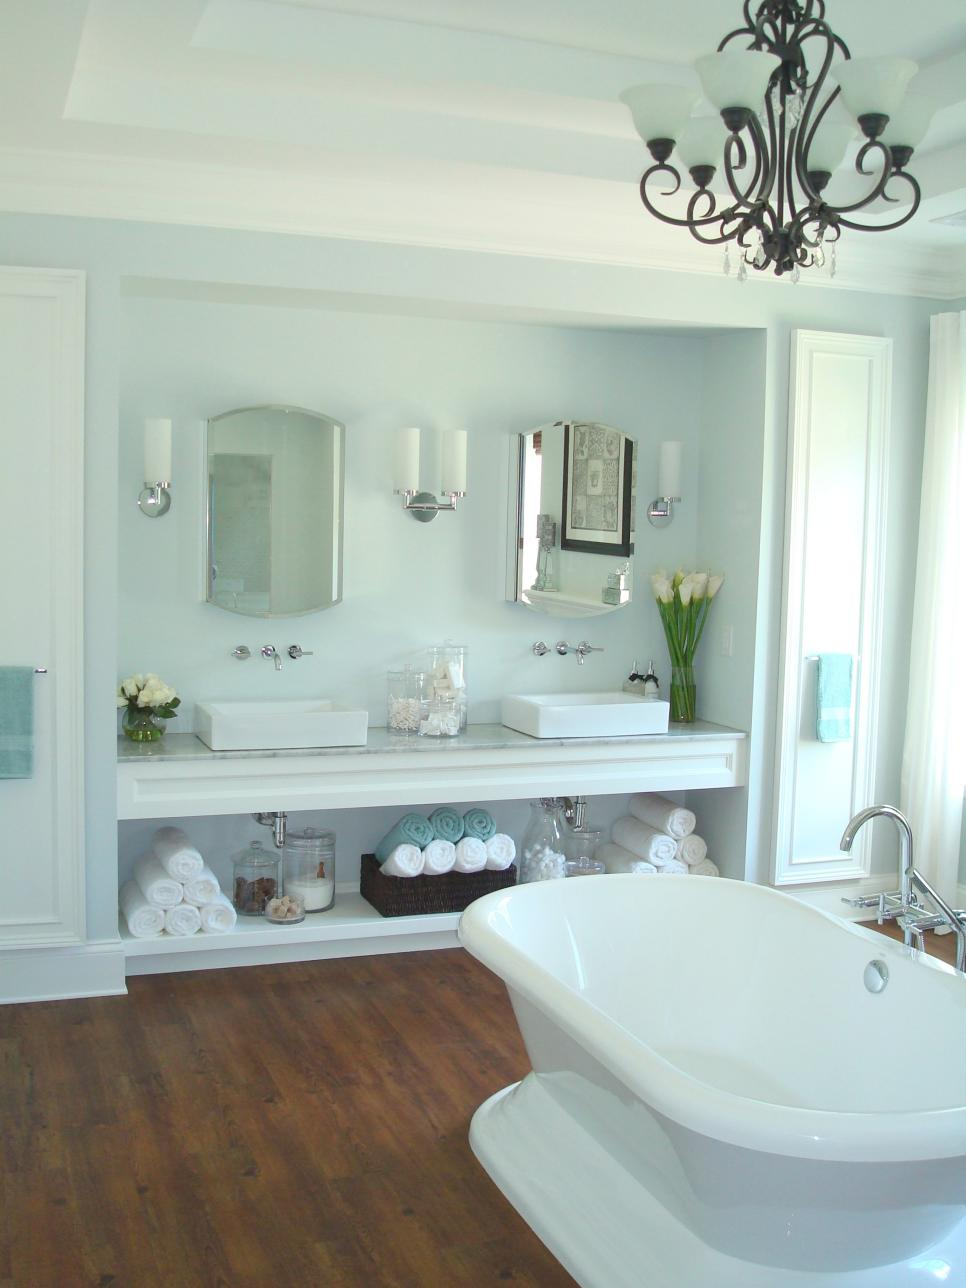 The best bathroom vanity ideas midcityeast for Vanity bathroom ideas